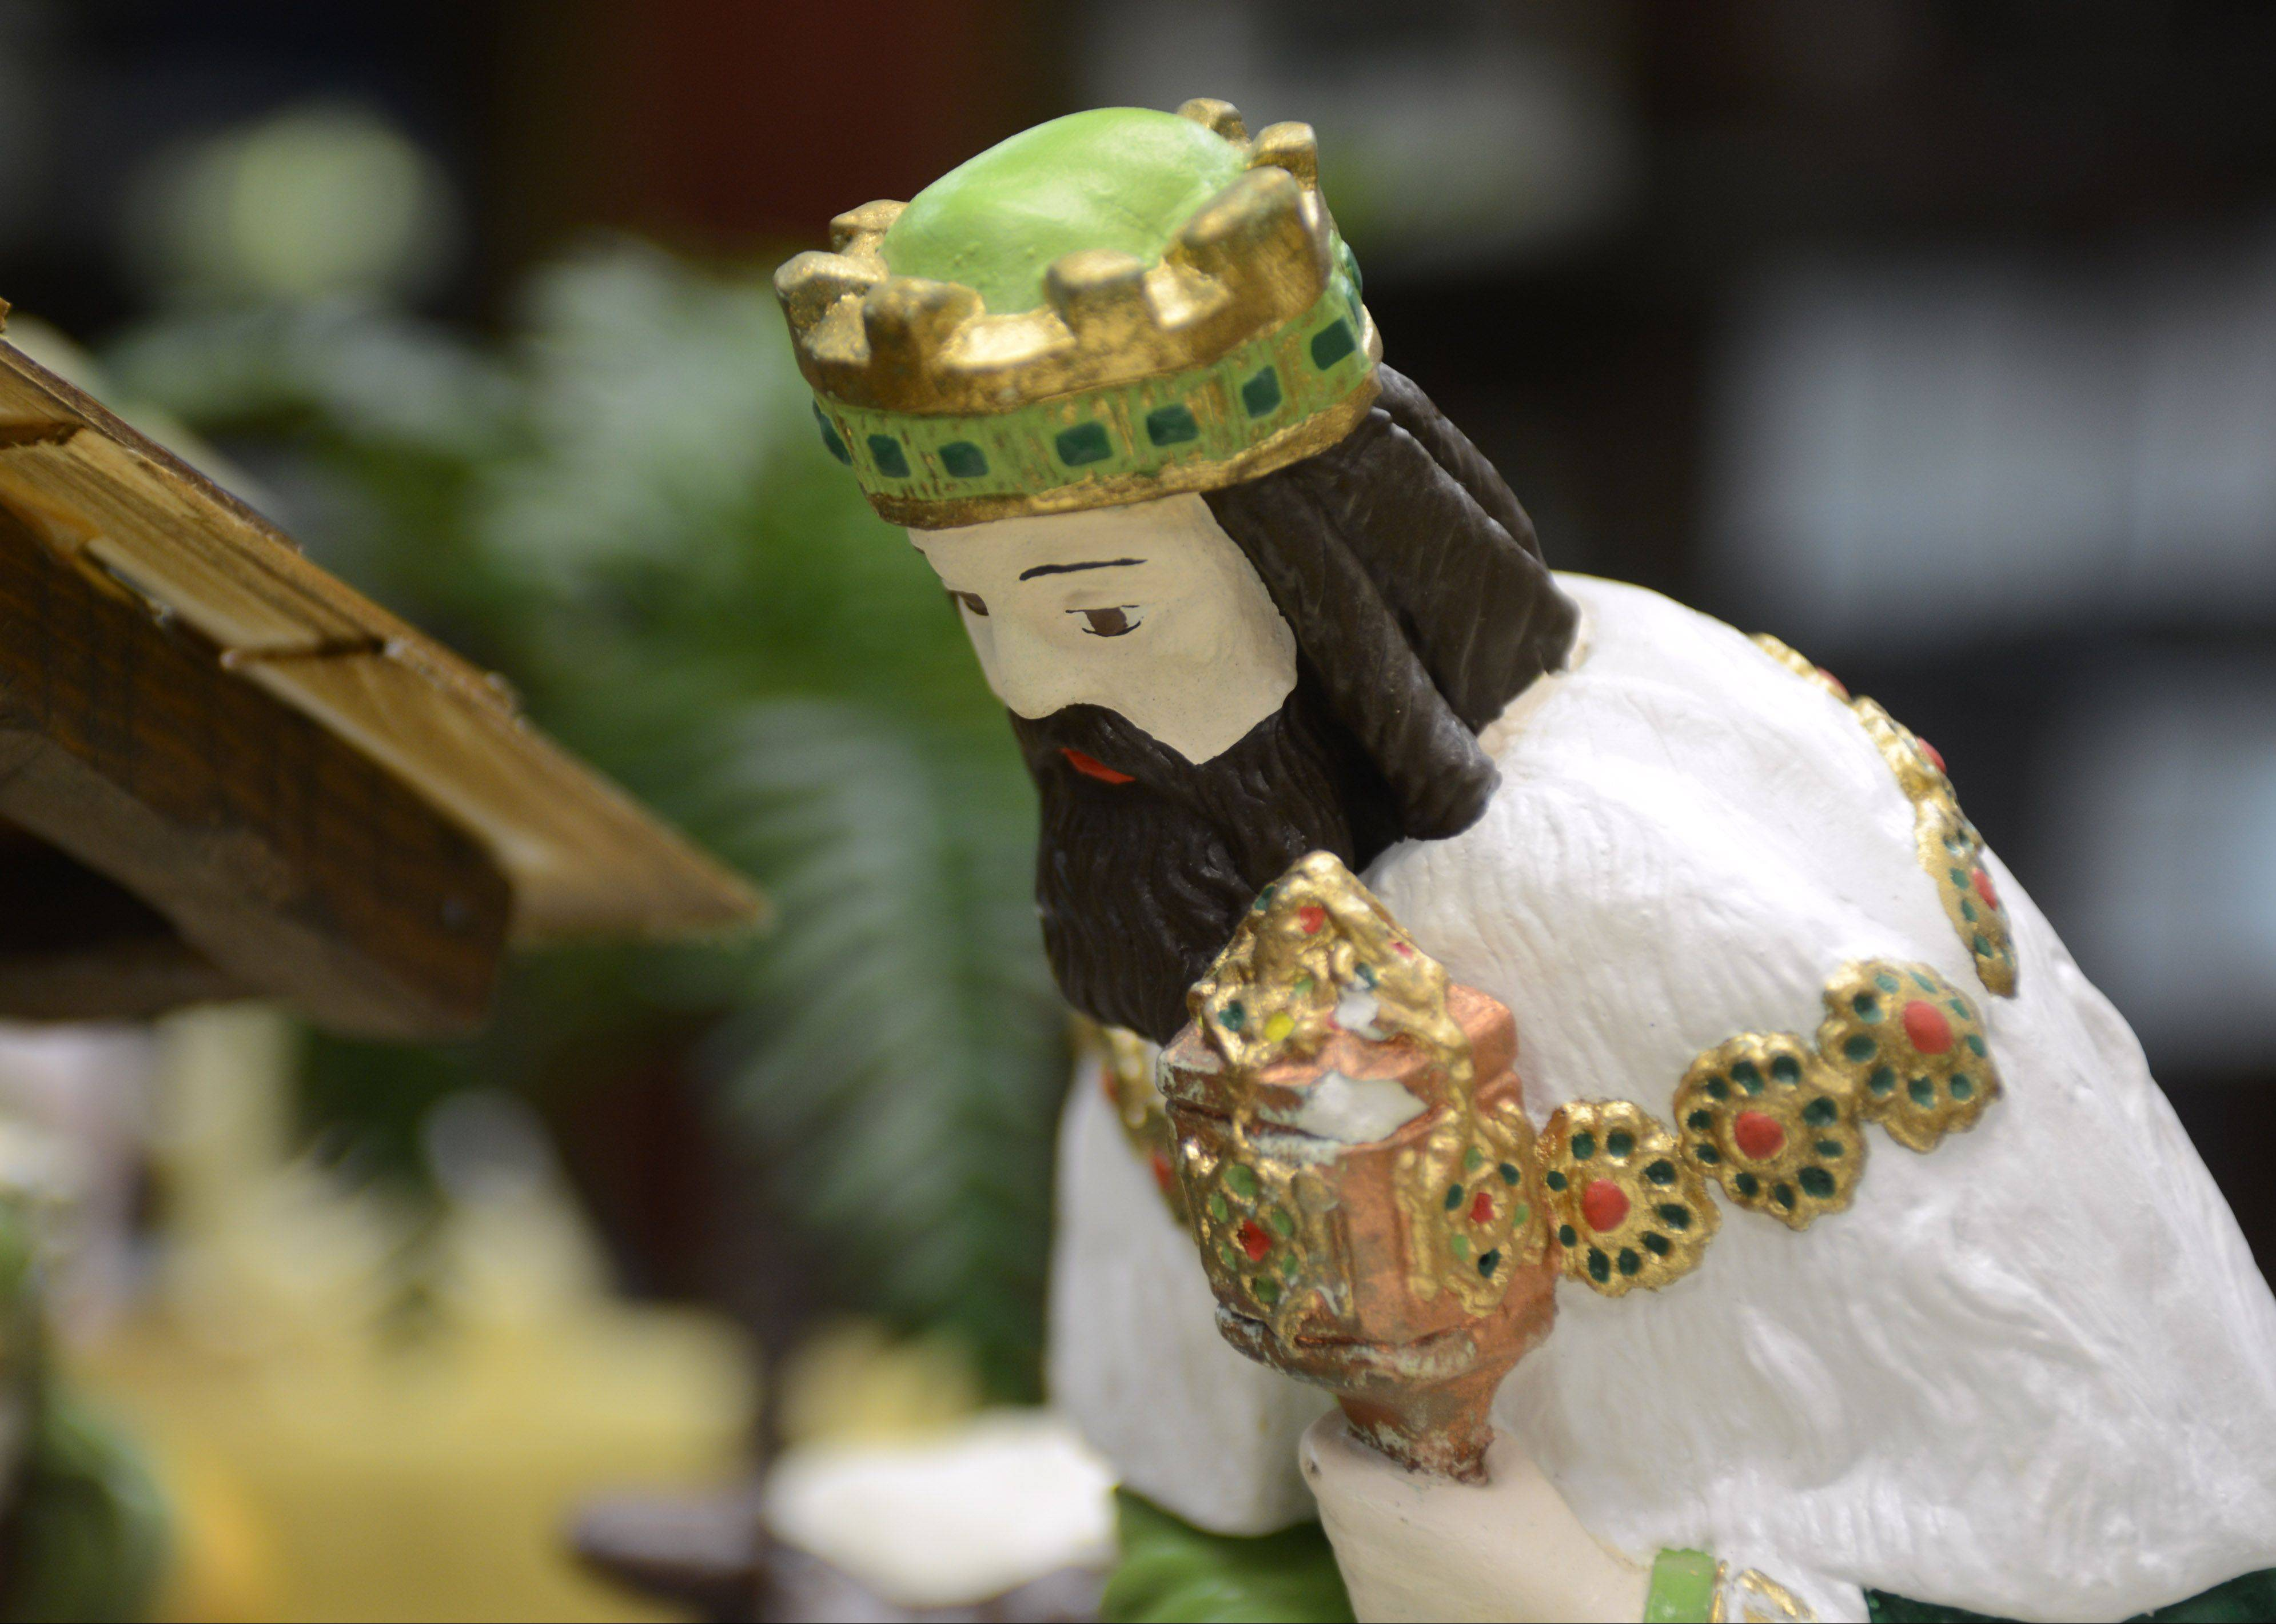 The various Nativity sets on display are made from glass, plastic, paper and wood.